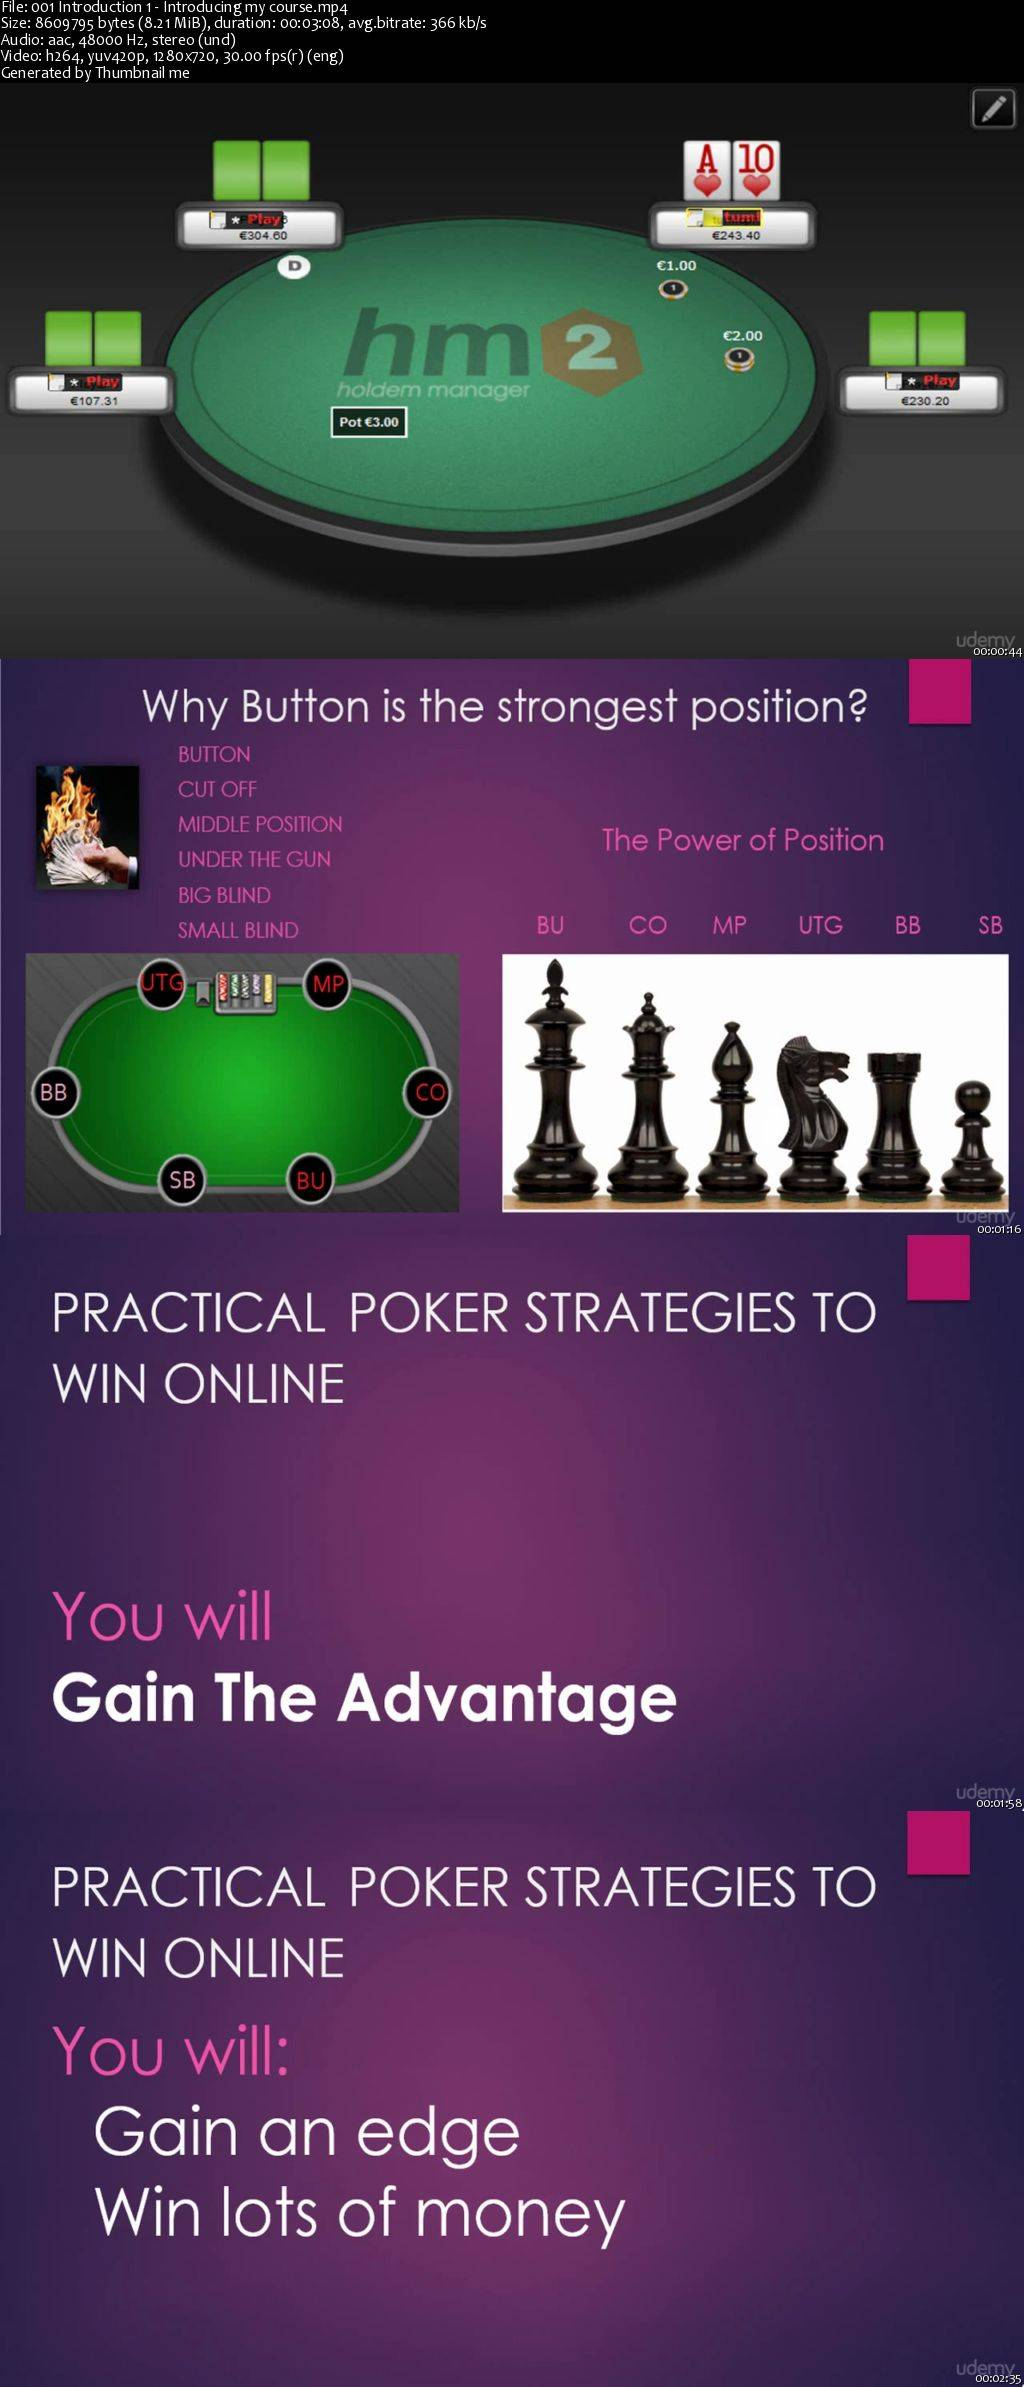 Practical poker strategies to win online